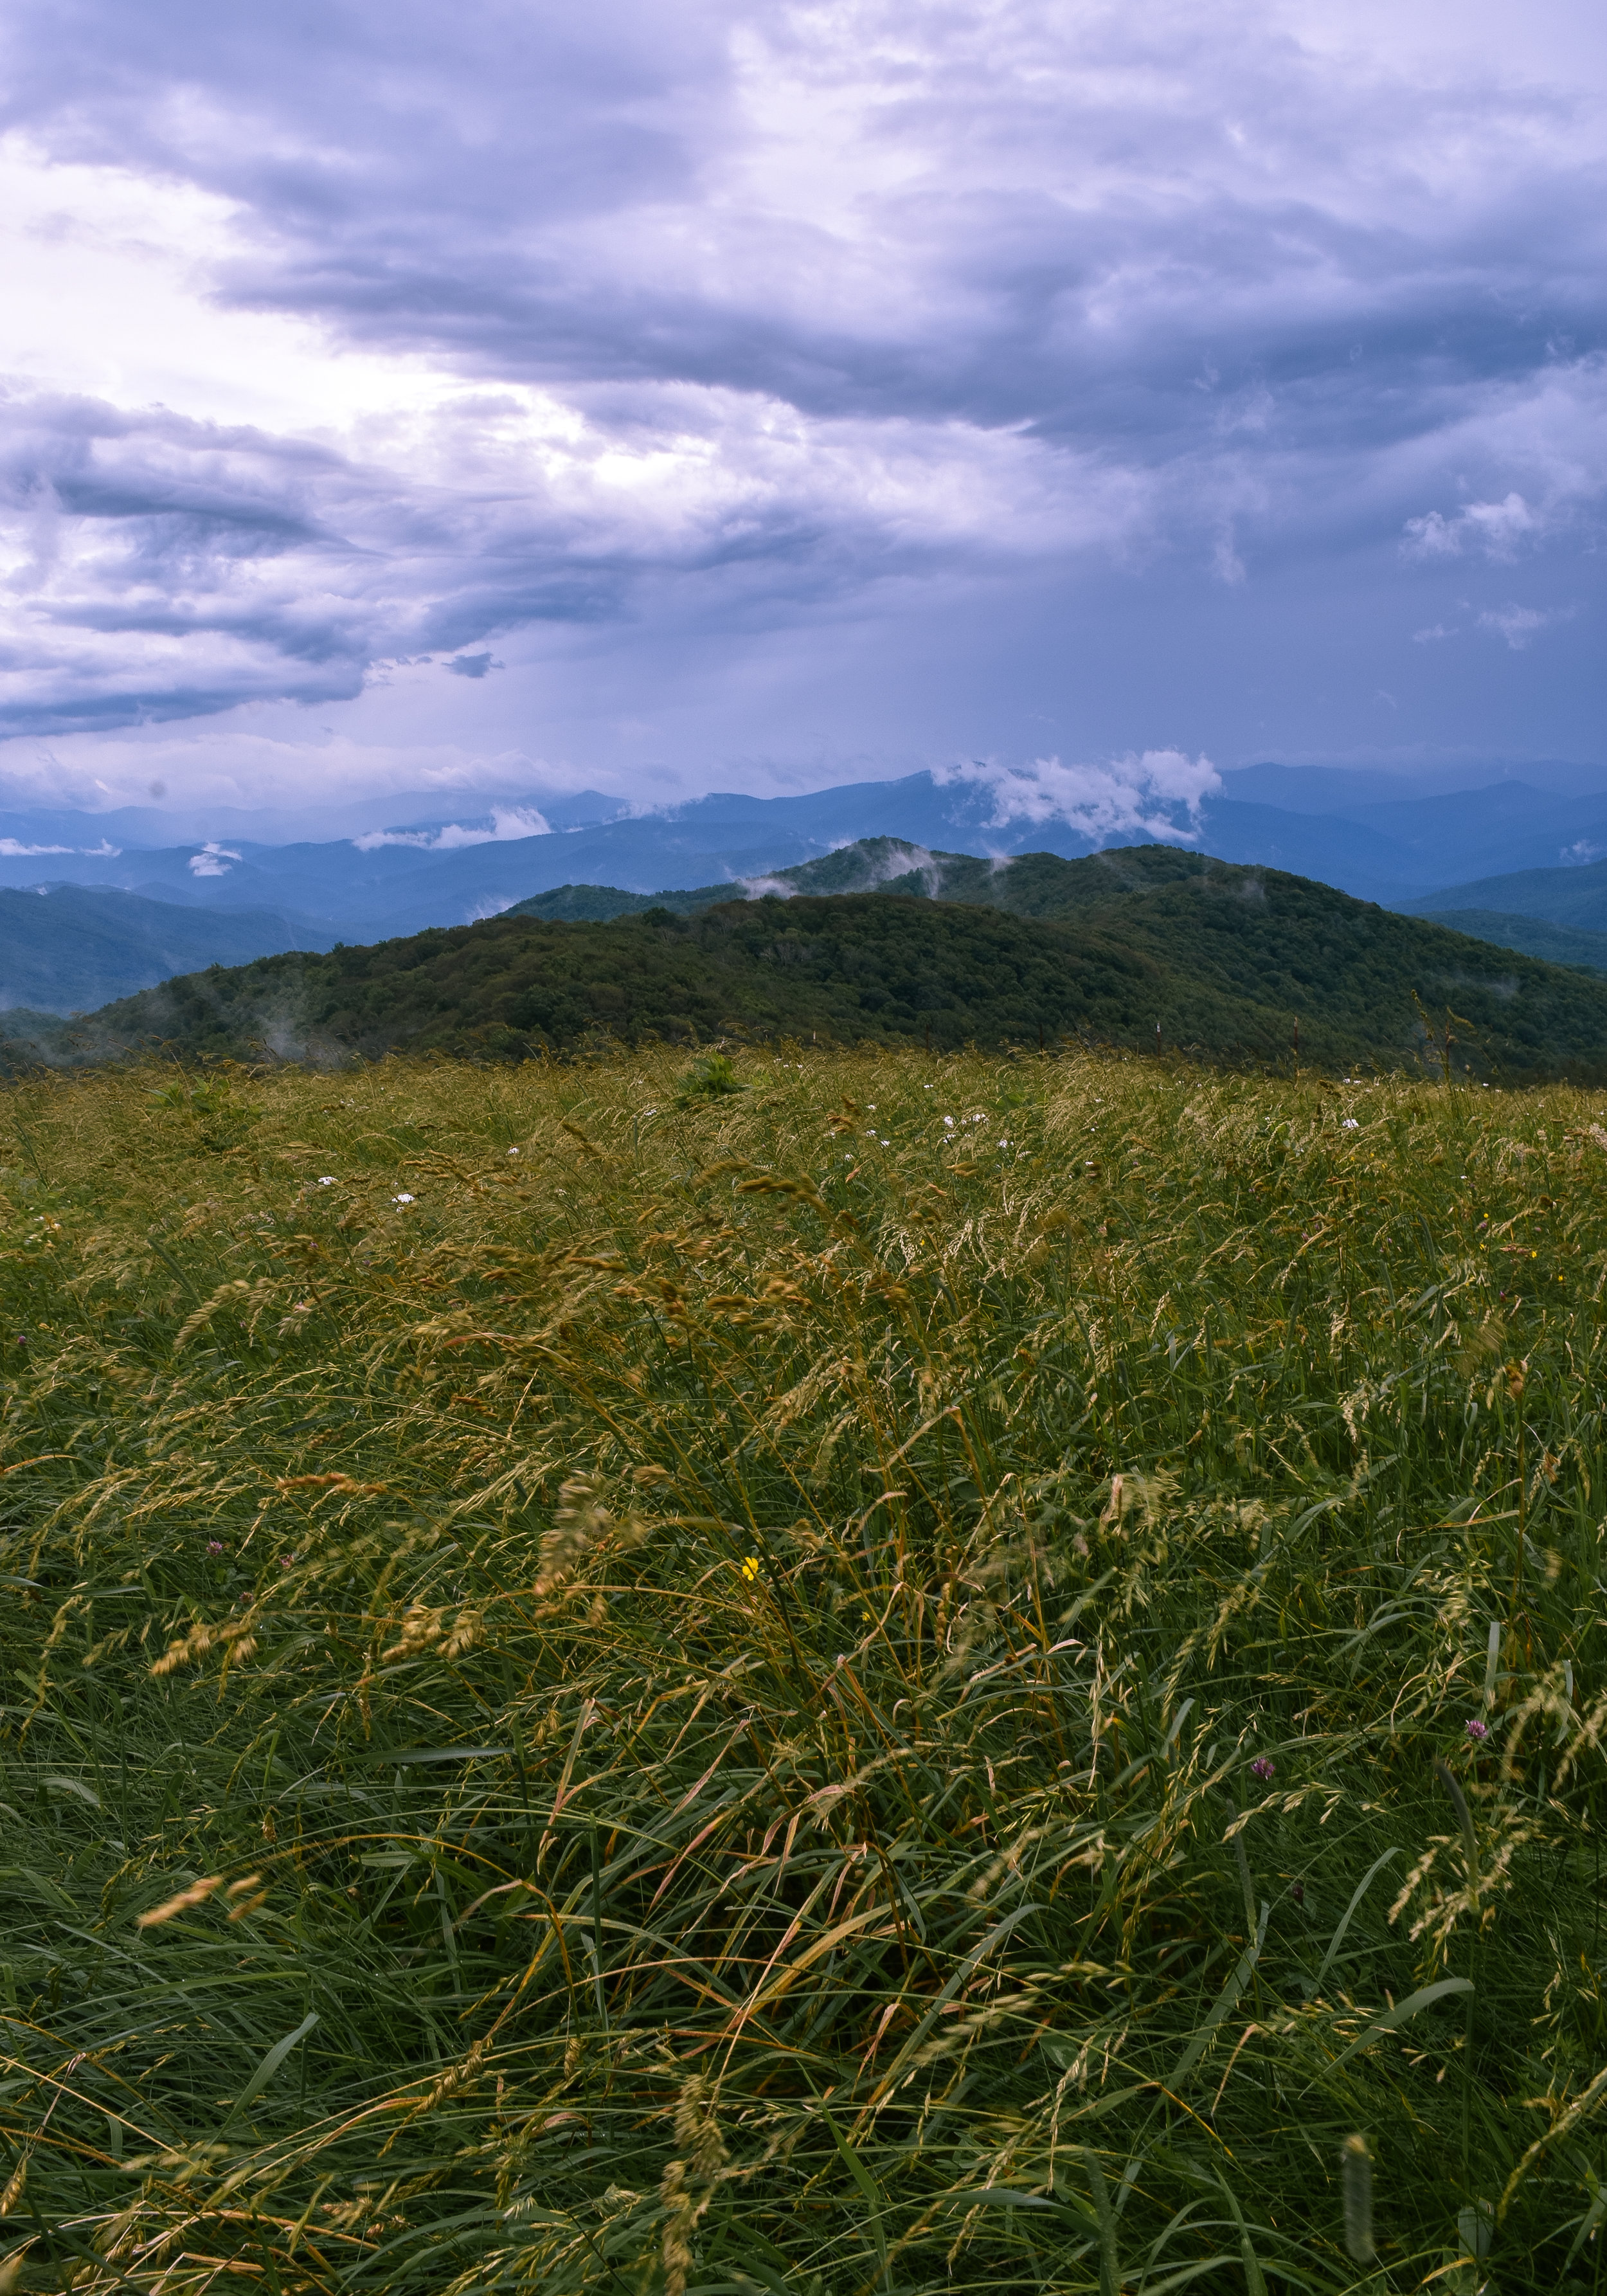 Watching the weather roll in atop Max Patch.